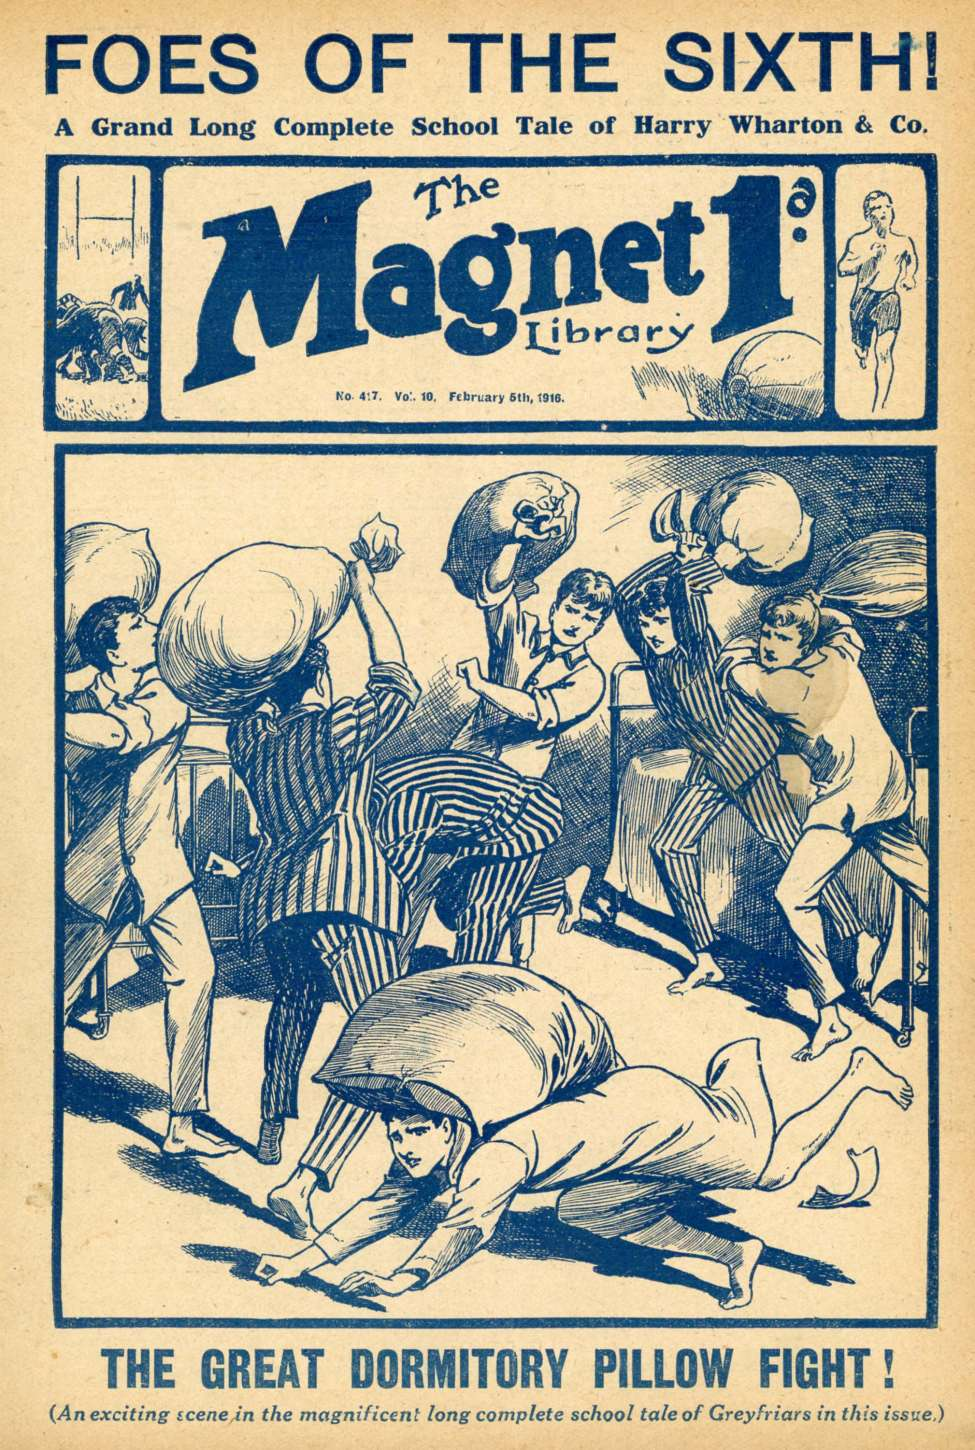 Comic Book Cover For The Magnet 0417 - Foes of the Sixth